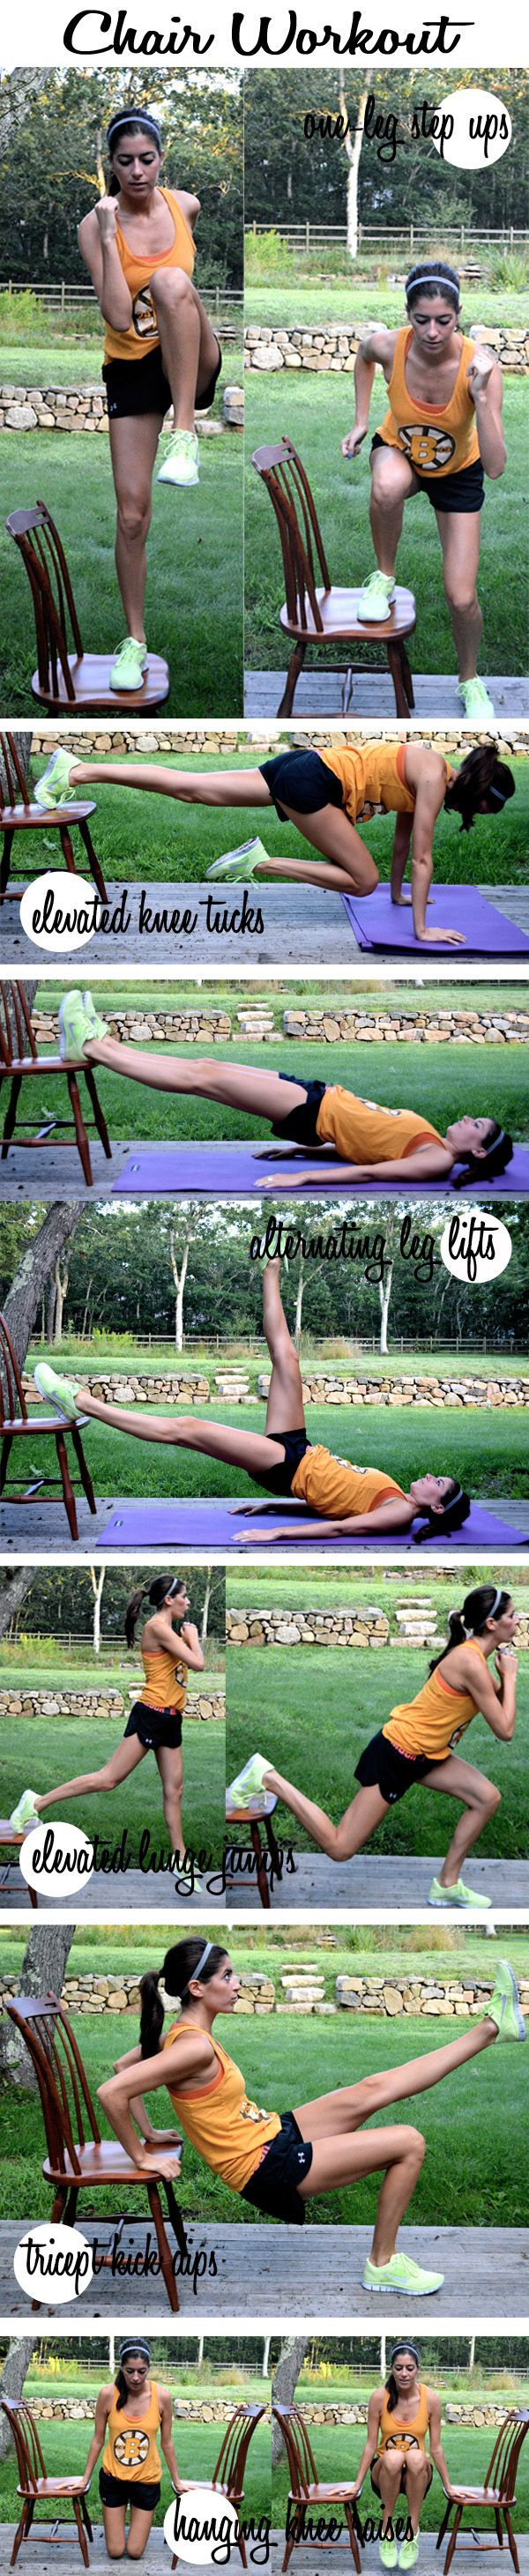 CHAIR WORKOUT   These 27 Workout Diagrams Are All You Need To Get In Shape This Summer